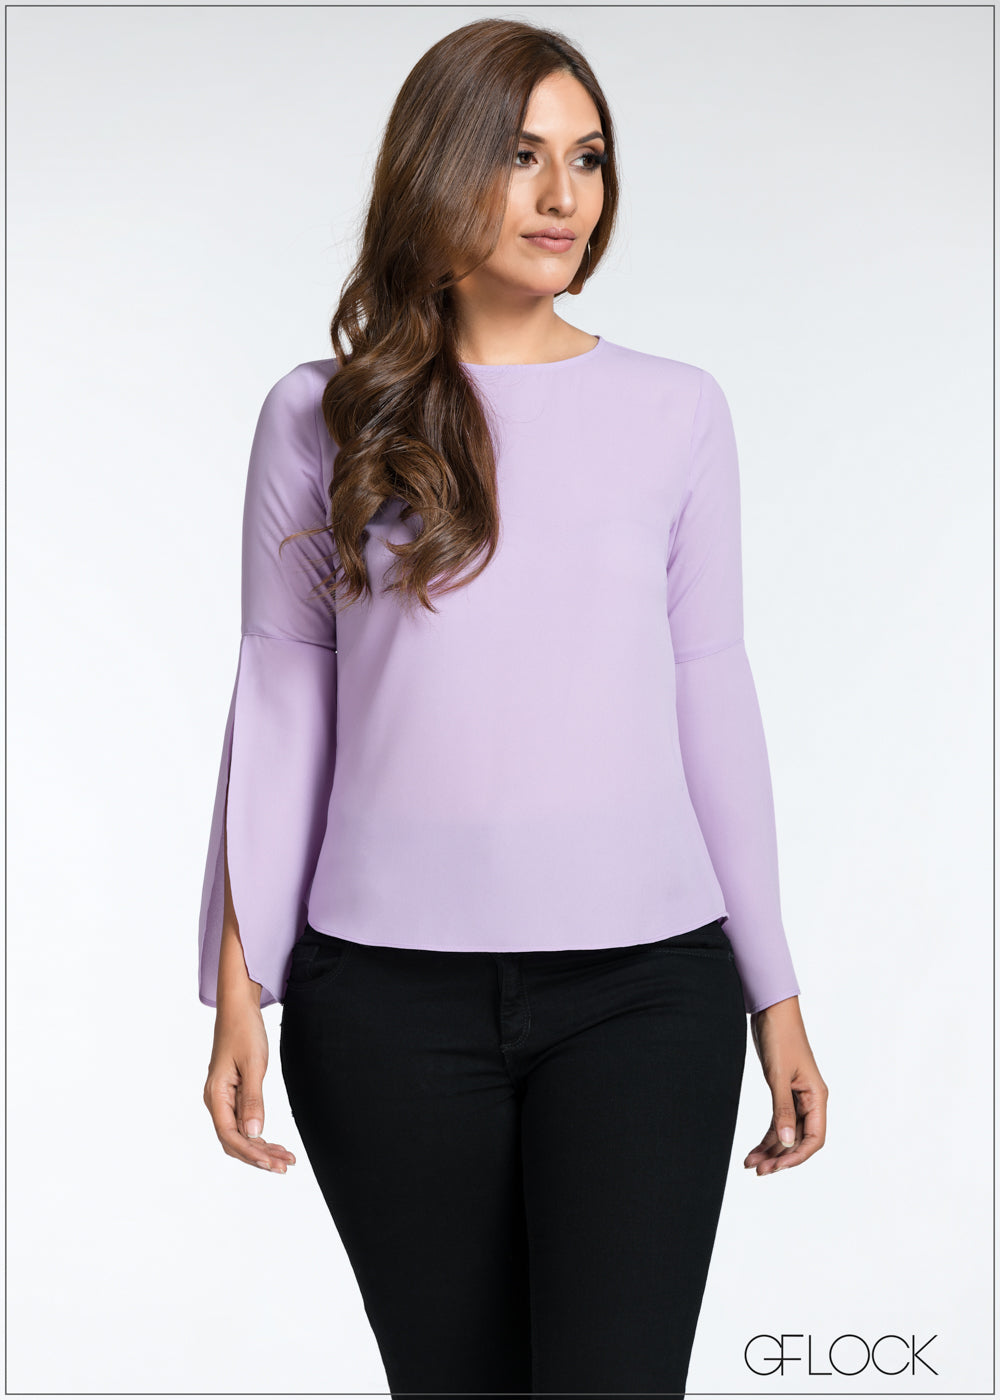 Flared Sleeve Top - GFLOCK.LK